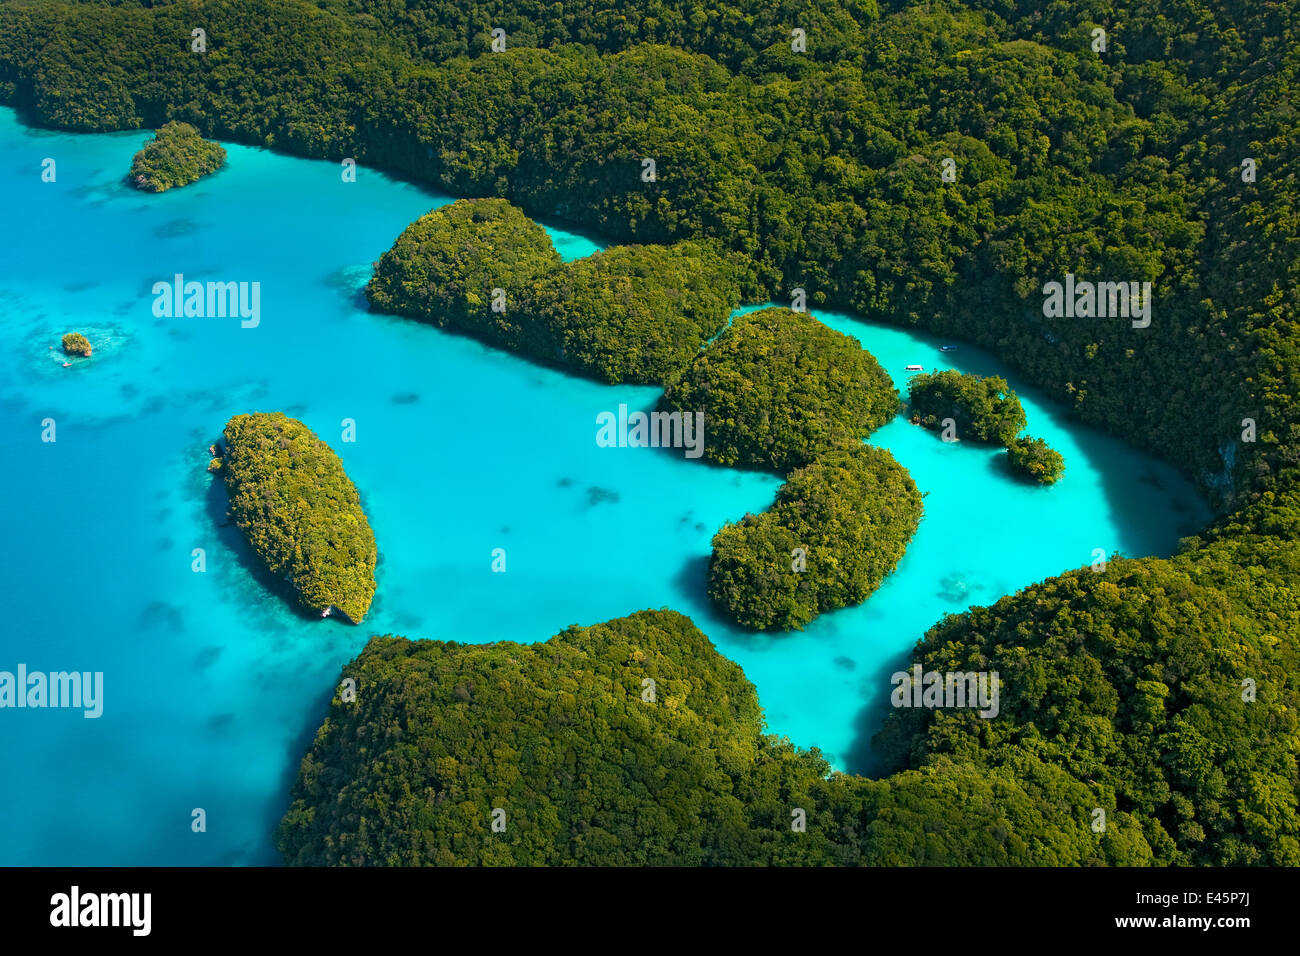 Aerial view of Milky Way Bay, Rock Islands, Palau, Micronesia. April 2009 - Stock Image